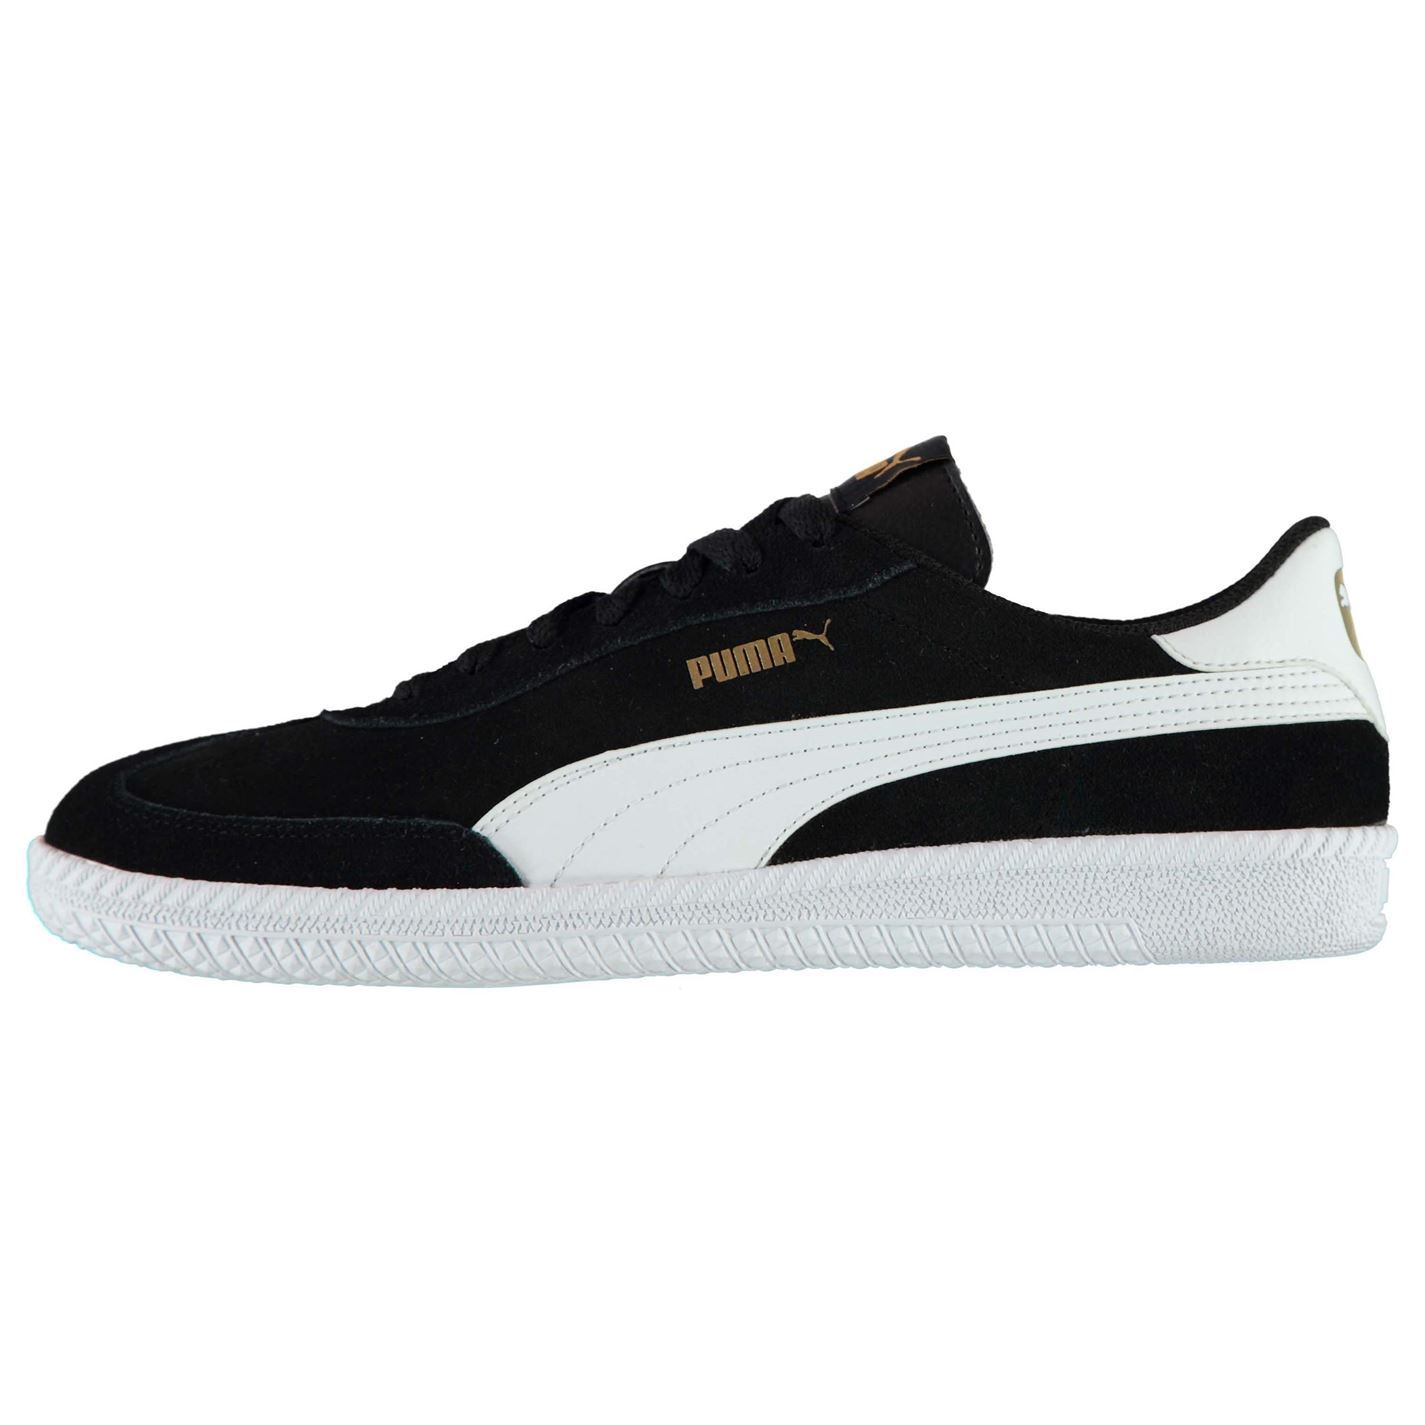 ab4642d91 Puma Mens Astro Cup Suede Trainers Shoes Lace Up Leather Padded ...